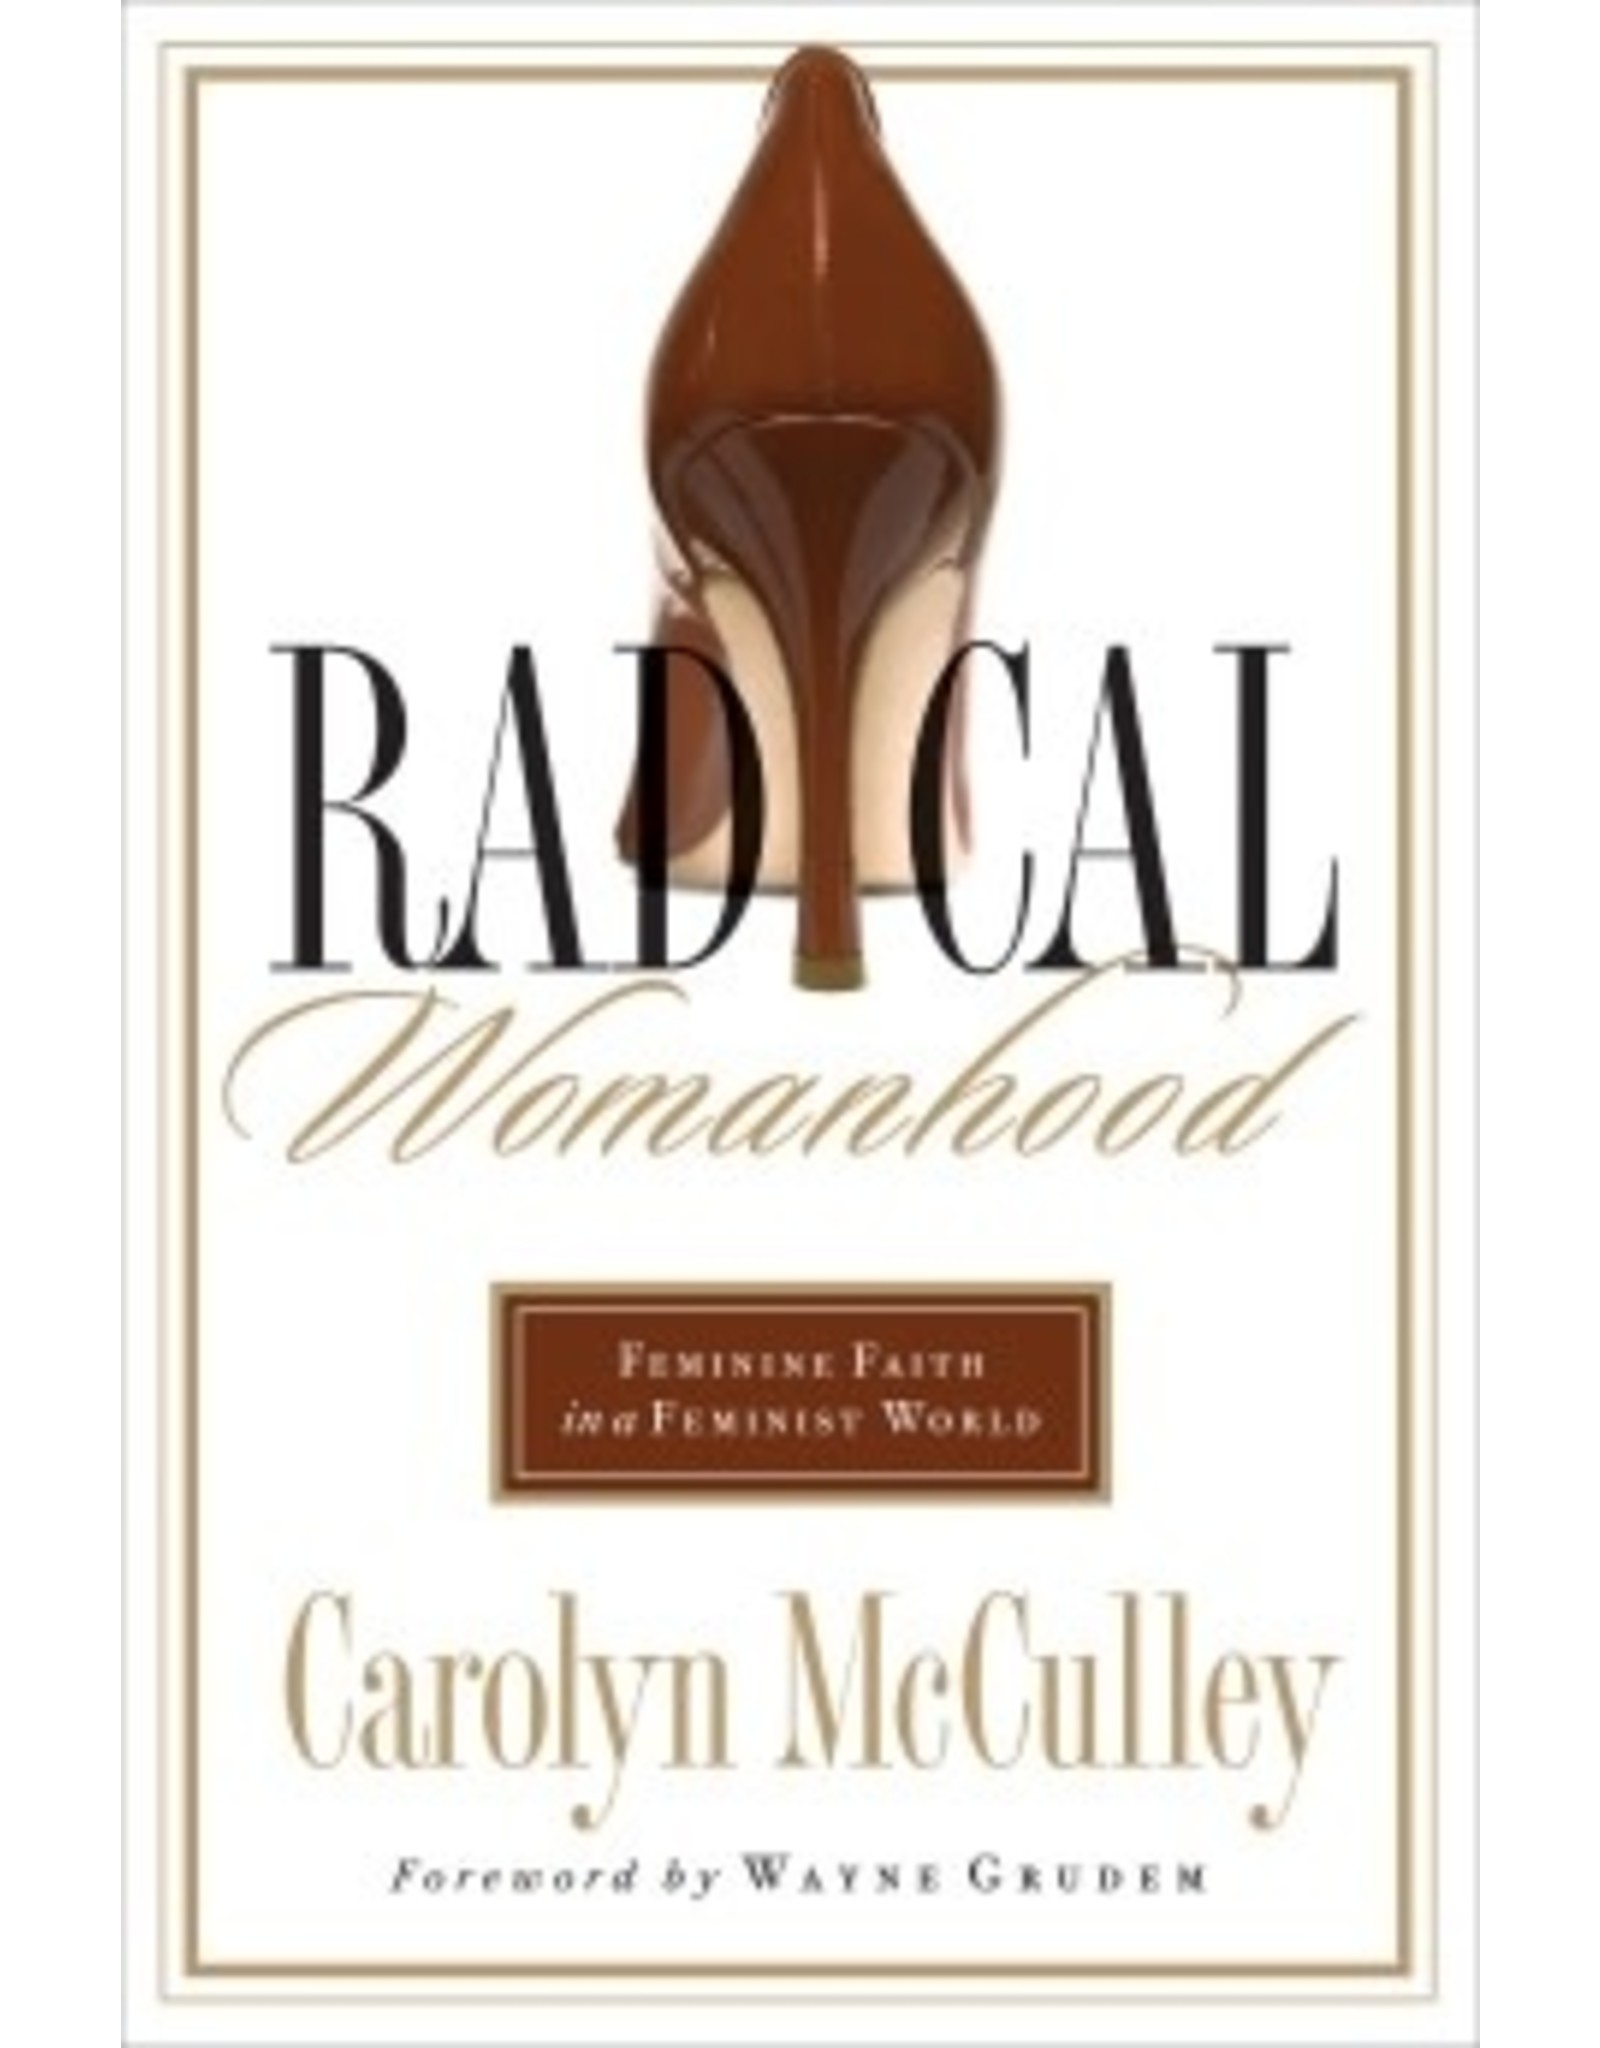 McCulley Radical Womanhood